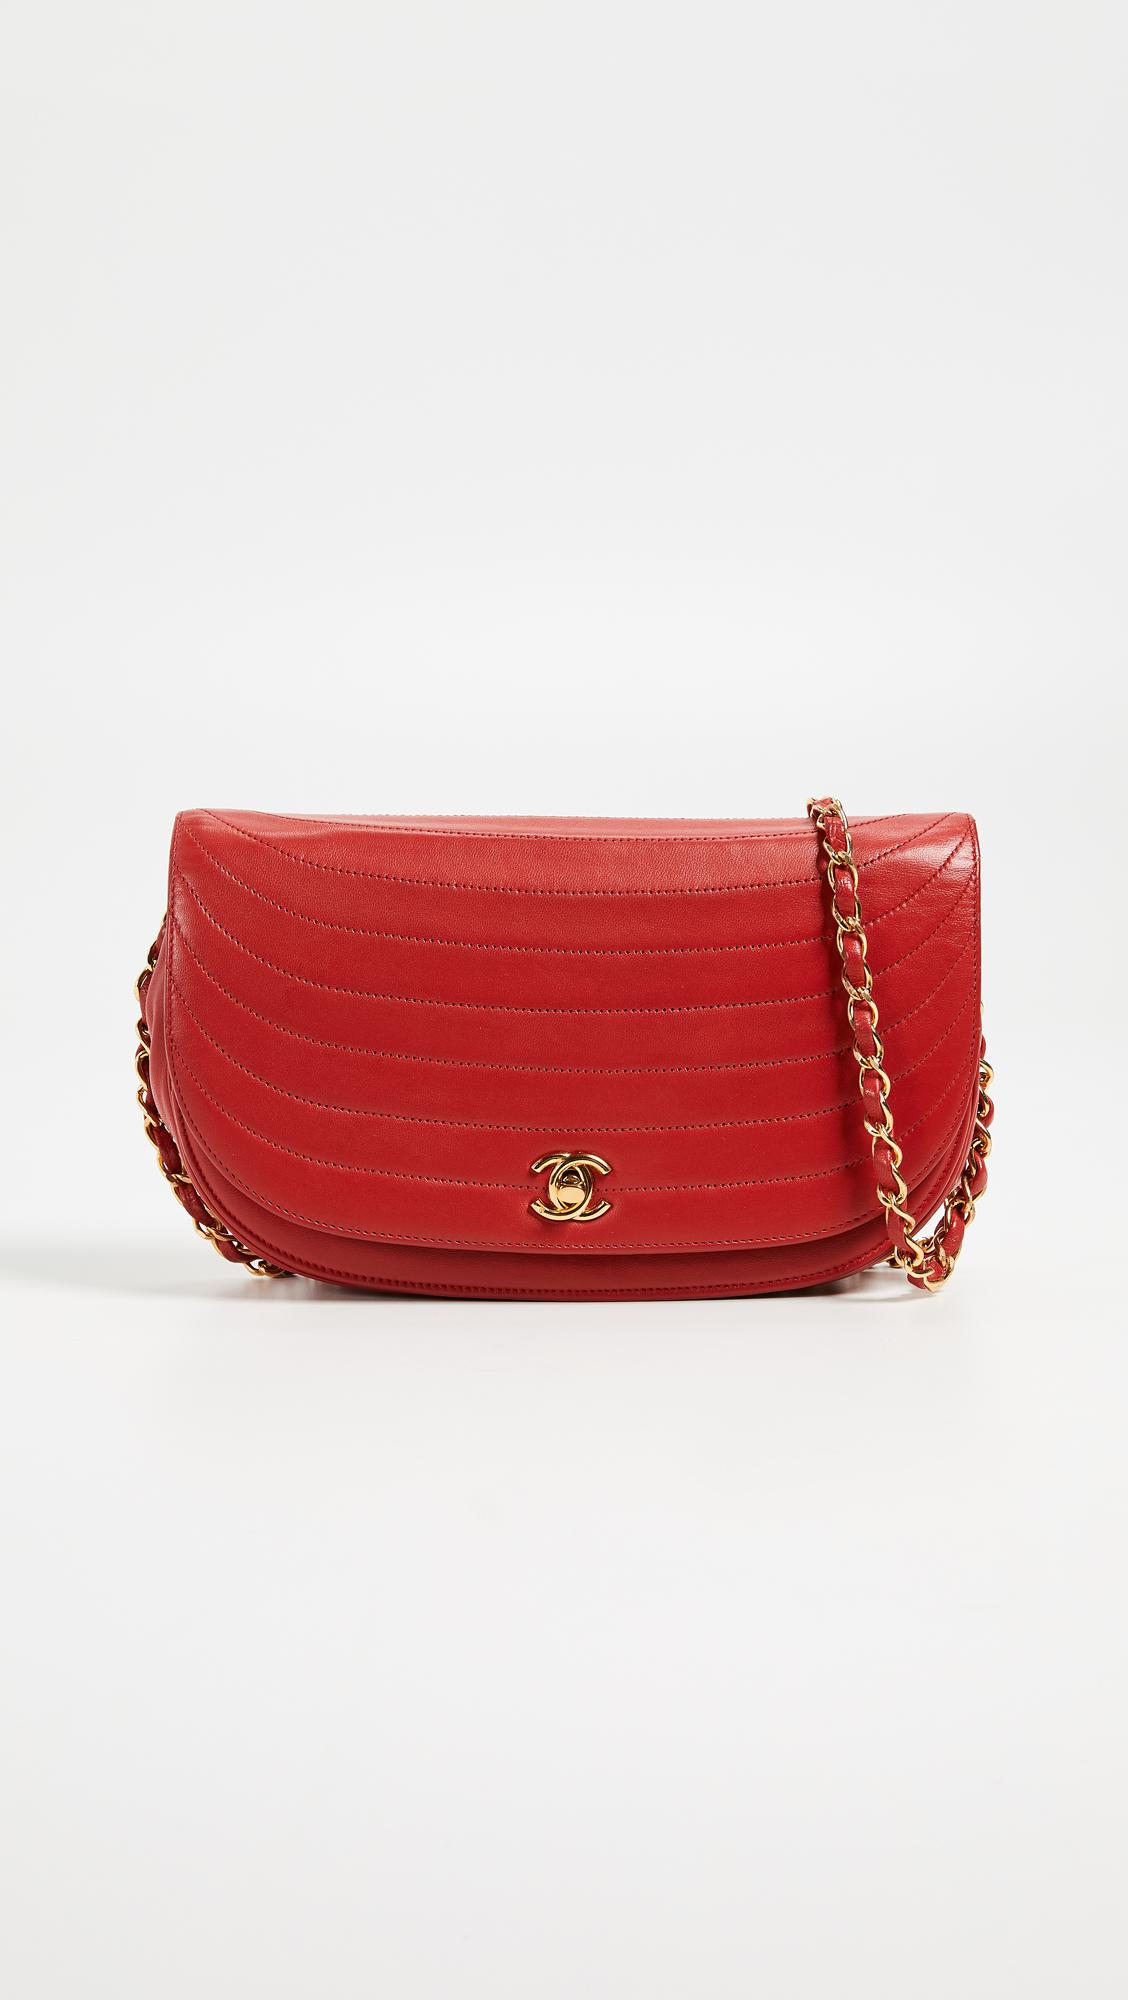 e031ceae986 What Goes Around Comes Around Chanel Lambskin Shoulder Bag in Red - Lyst